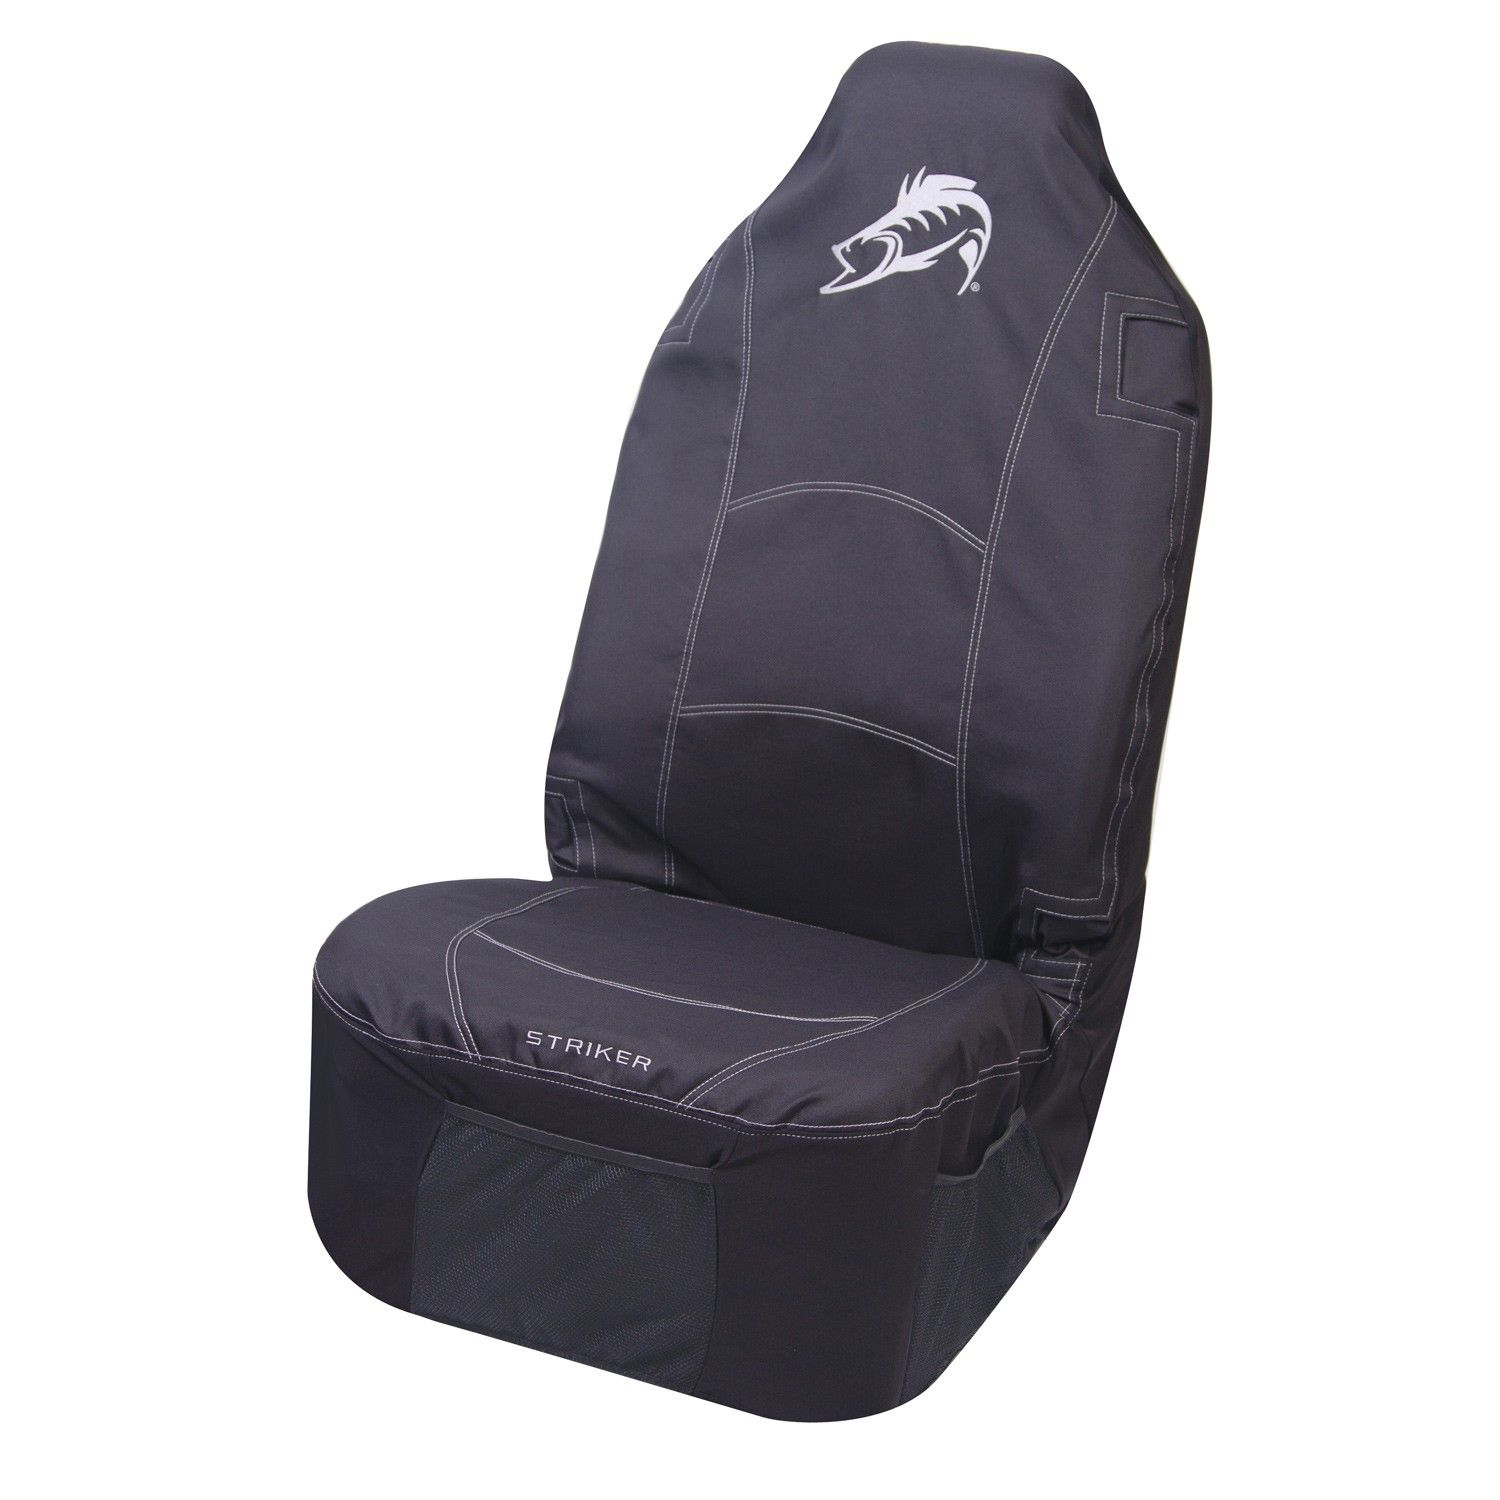 Striker fish theme universal seat cover his camo for Fishing bucket seat